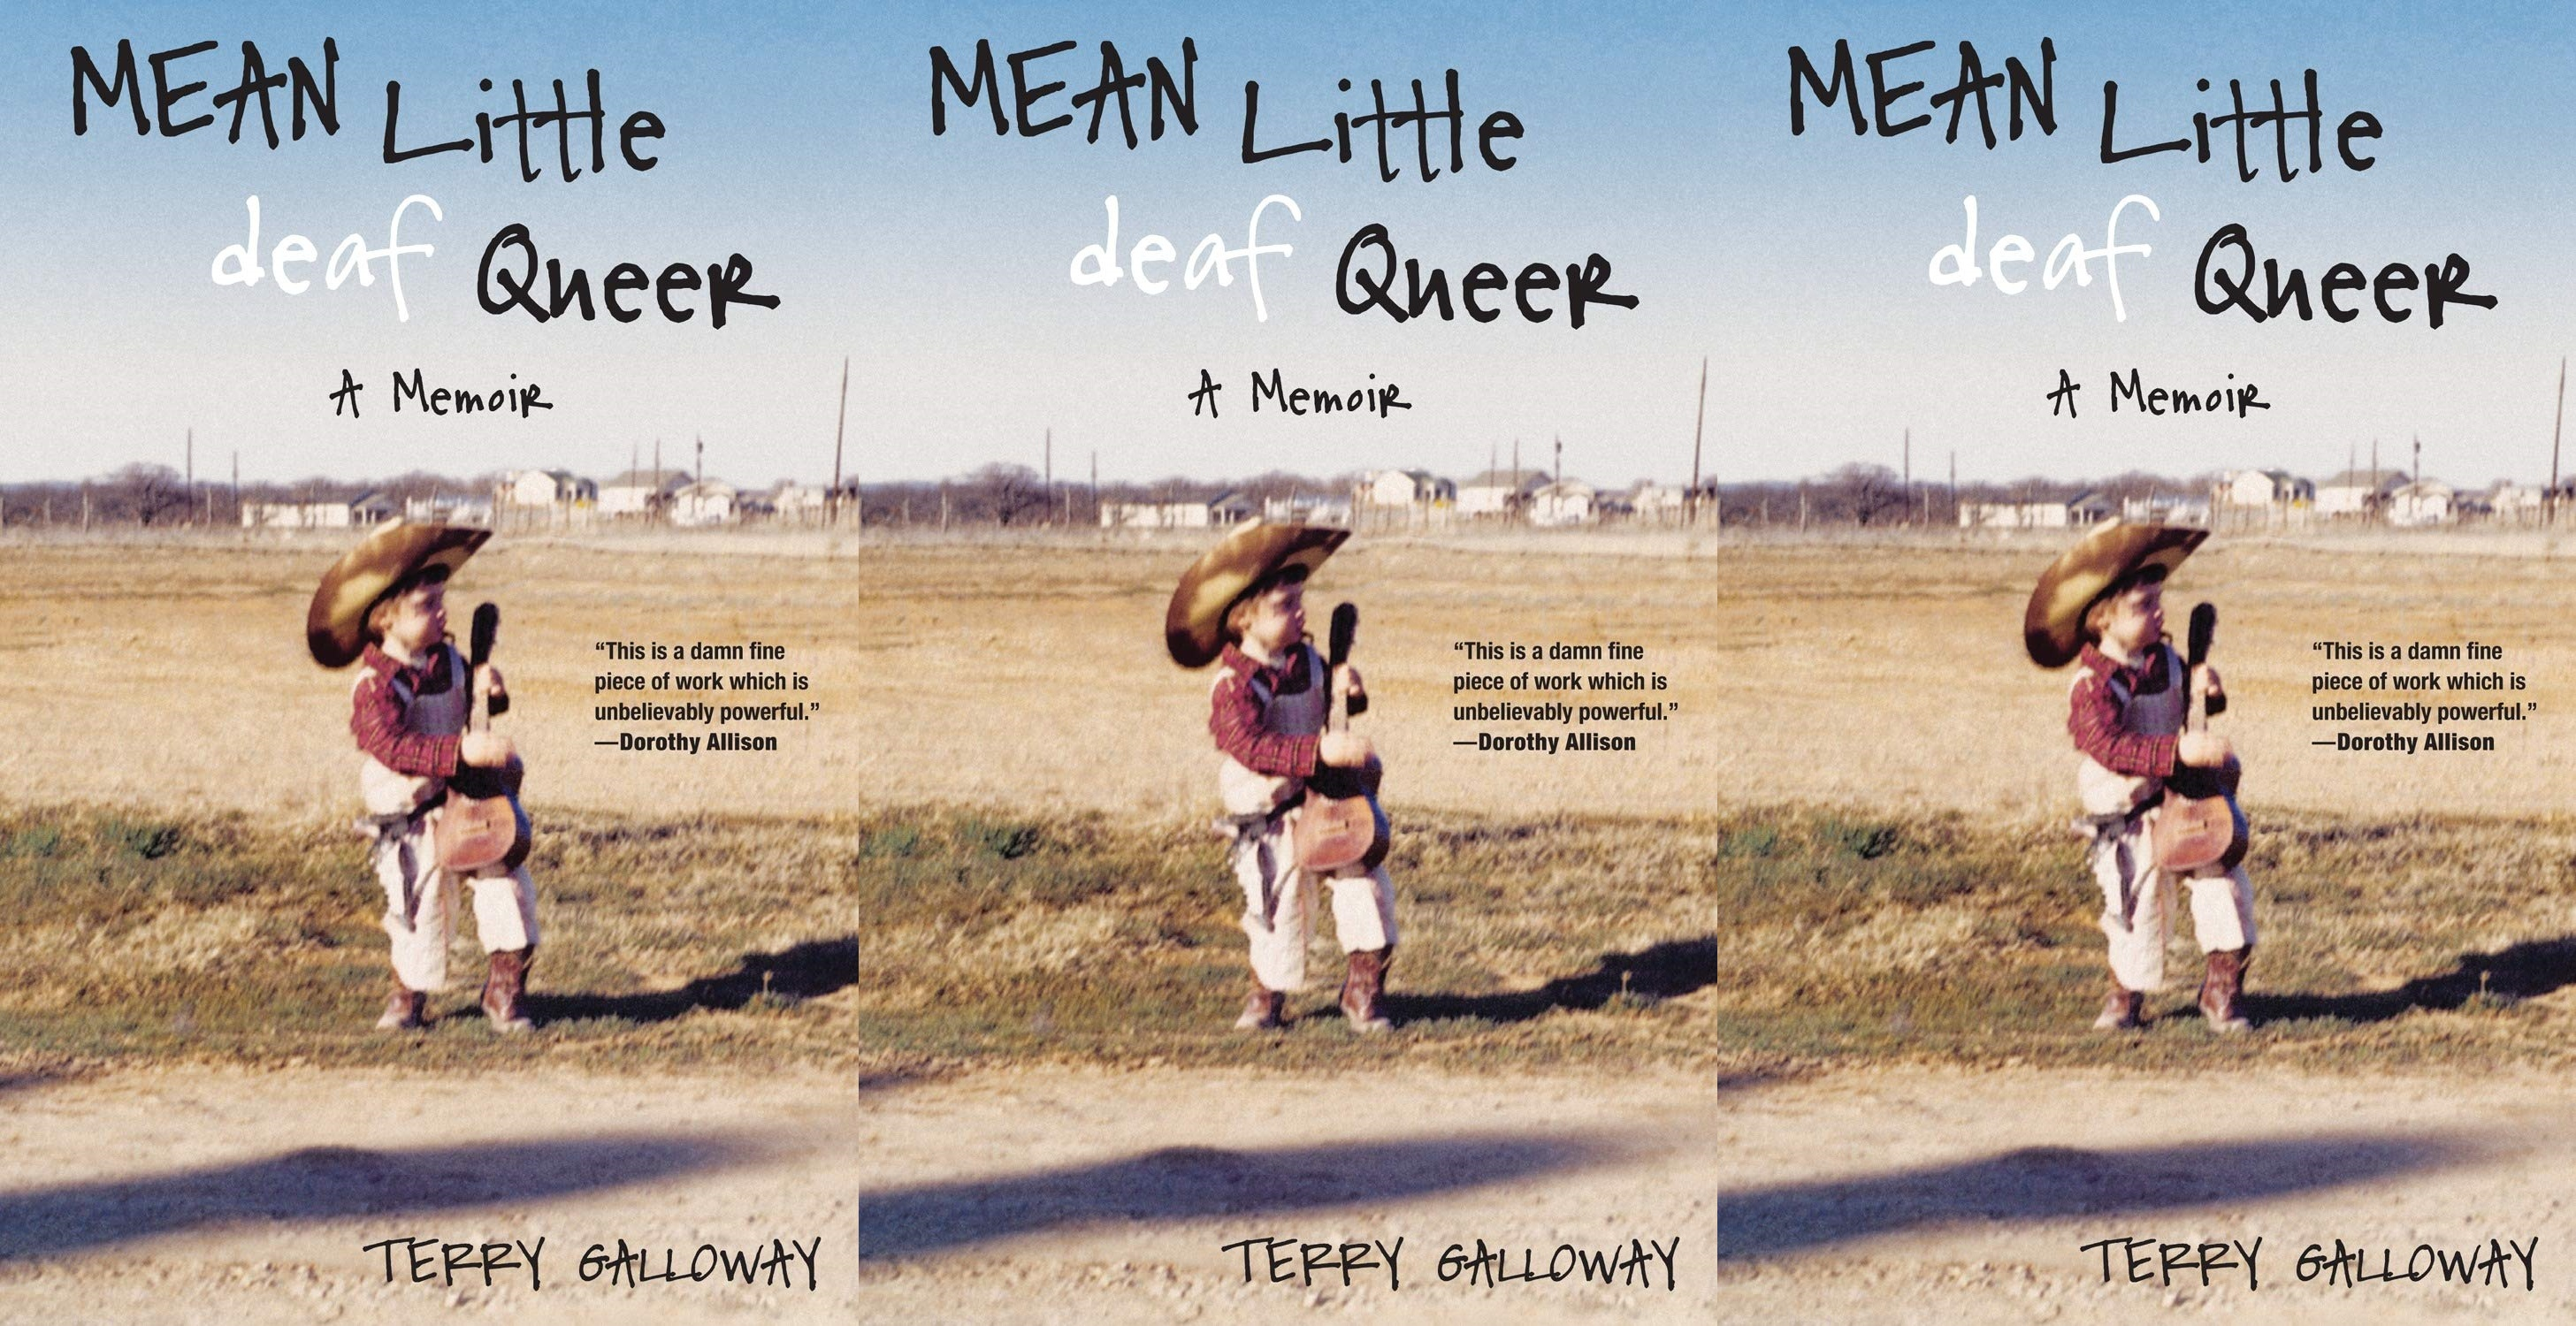 deaf books, mean little deaf queer by terry galloway, books